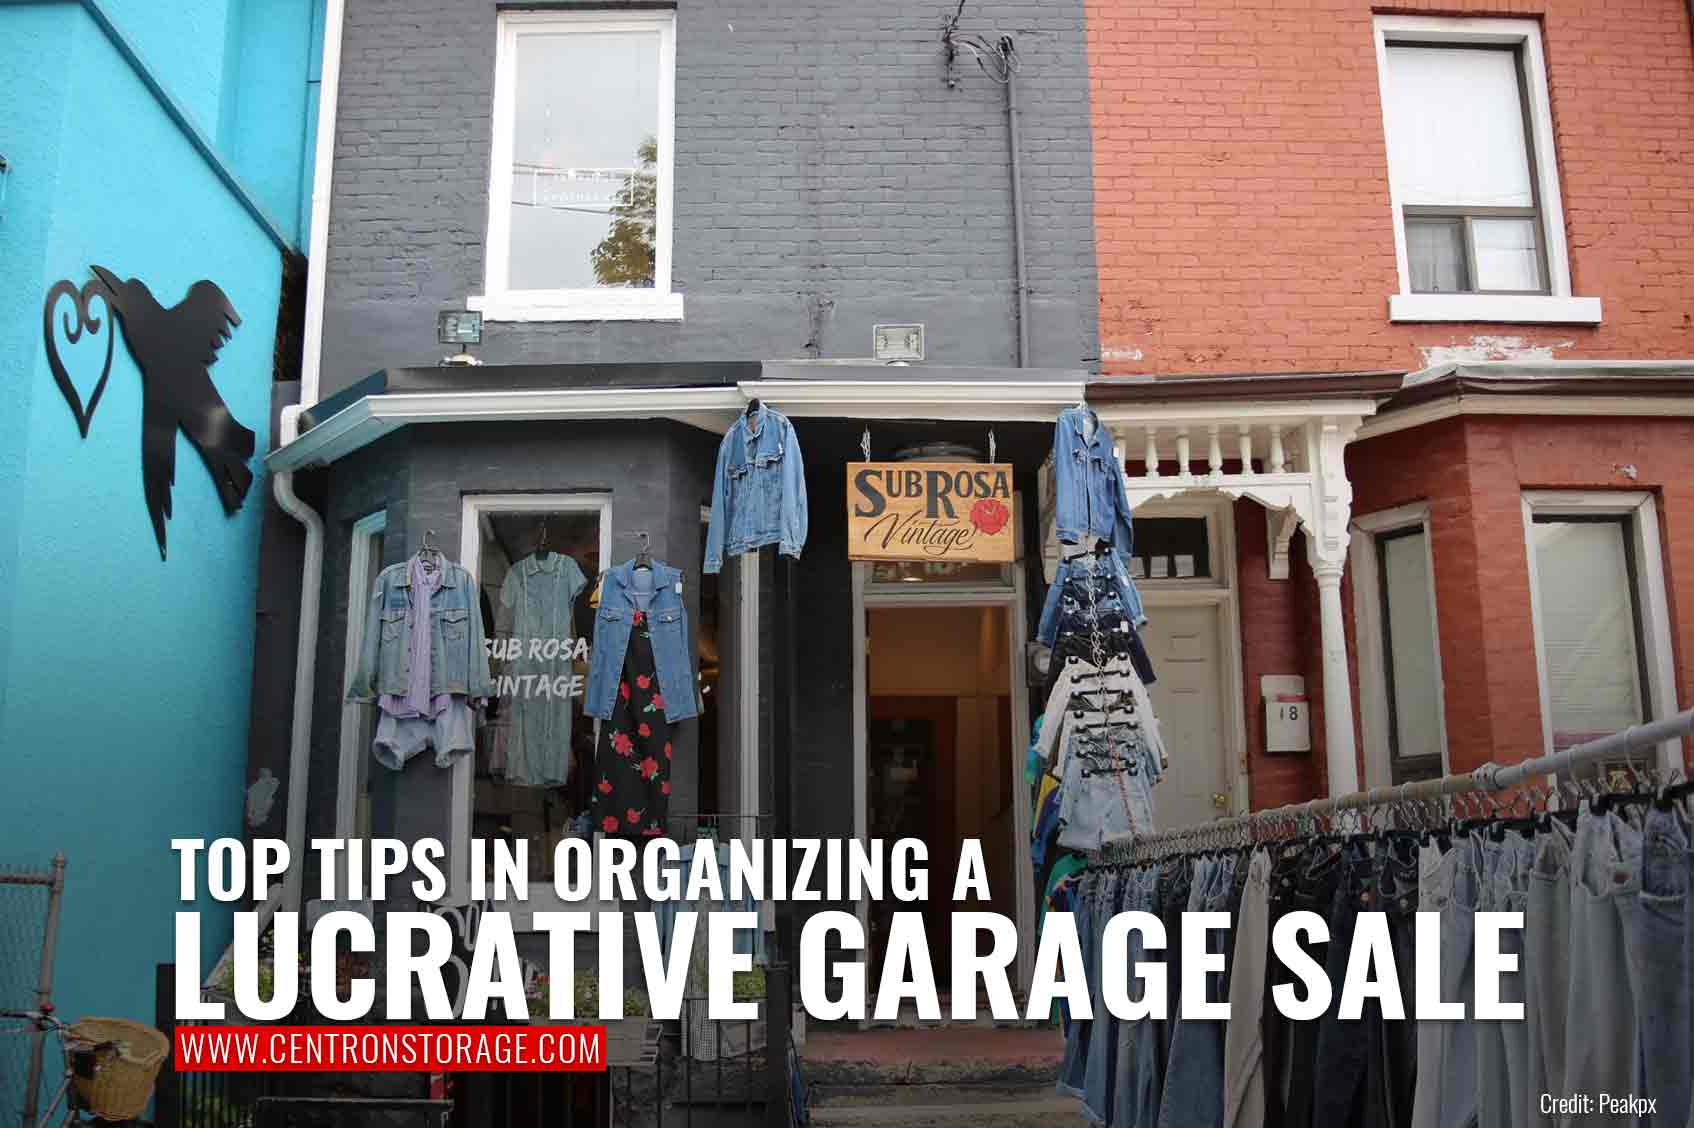 Top Tips in Organizing a Lucrative Garage Sale